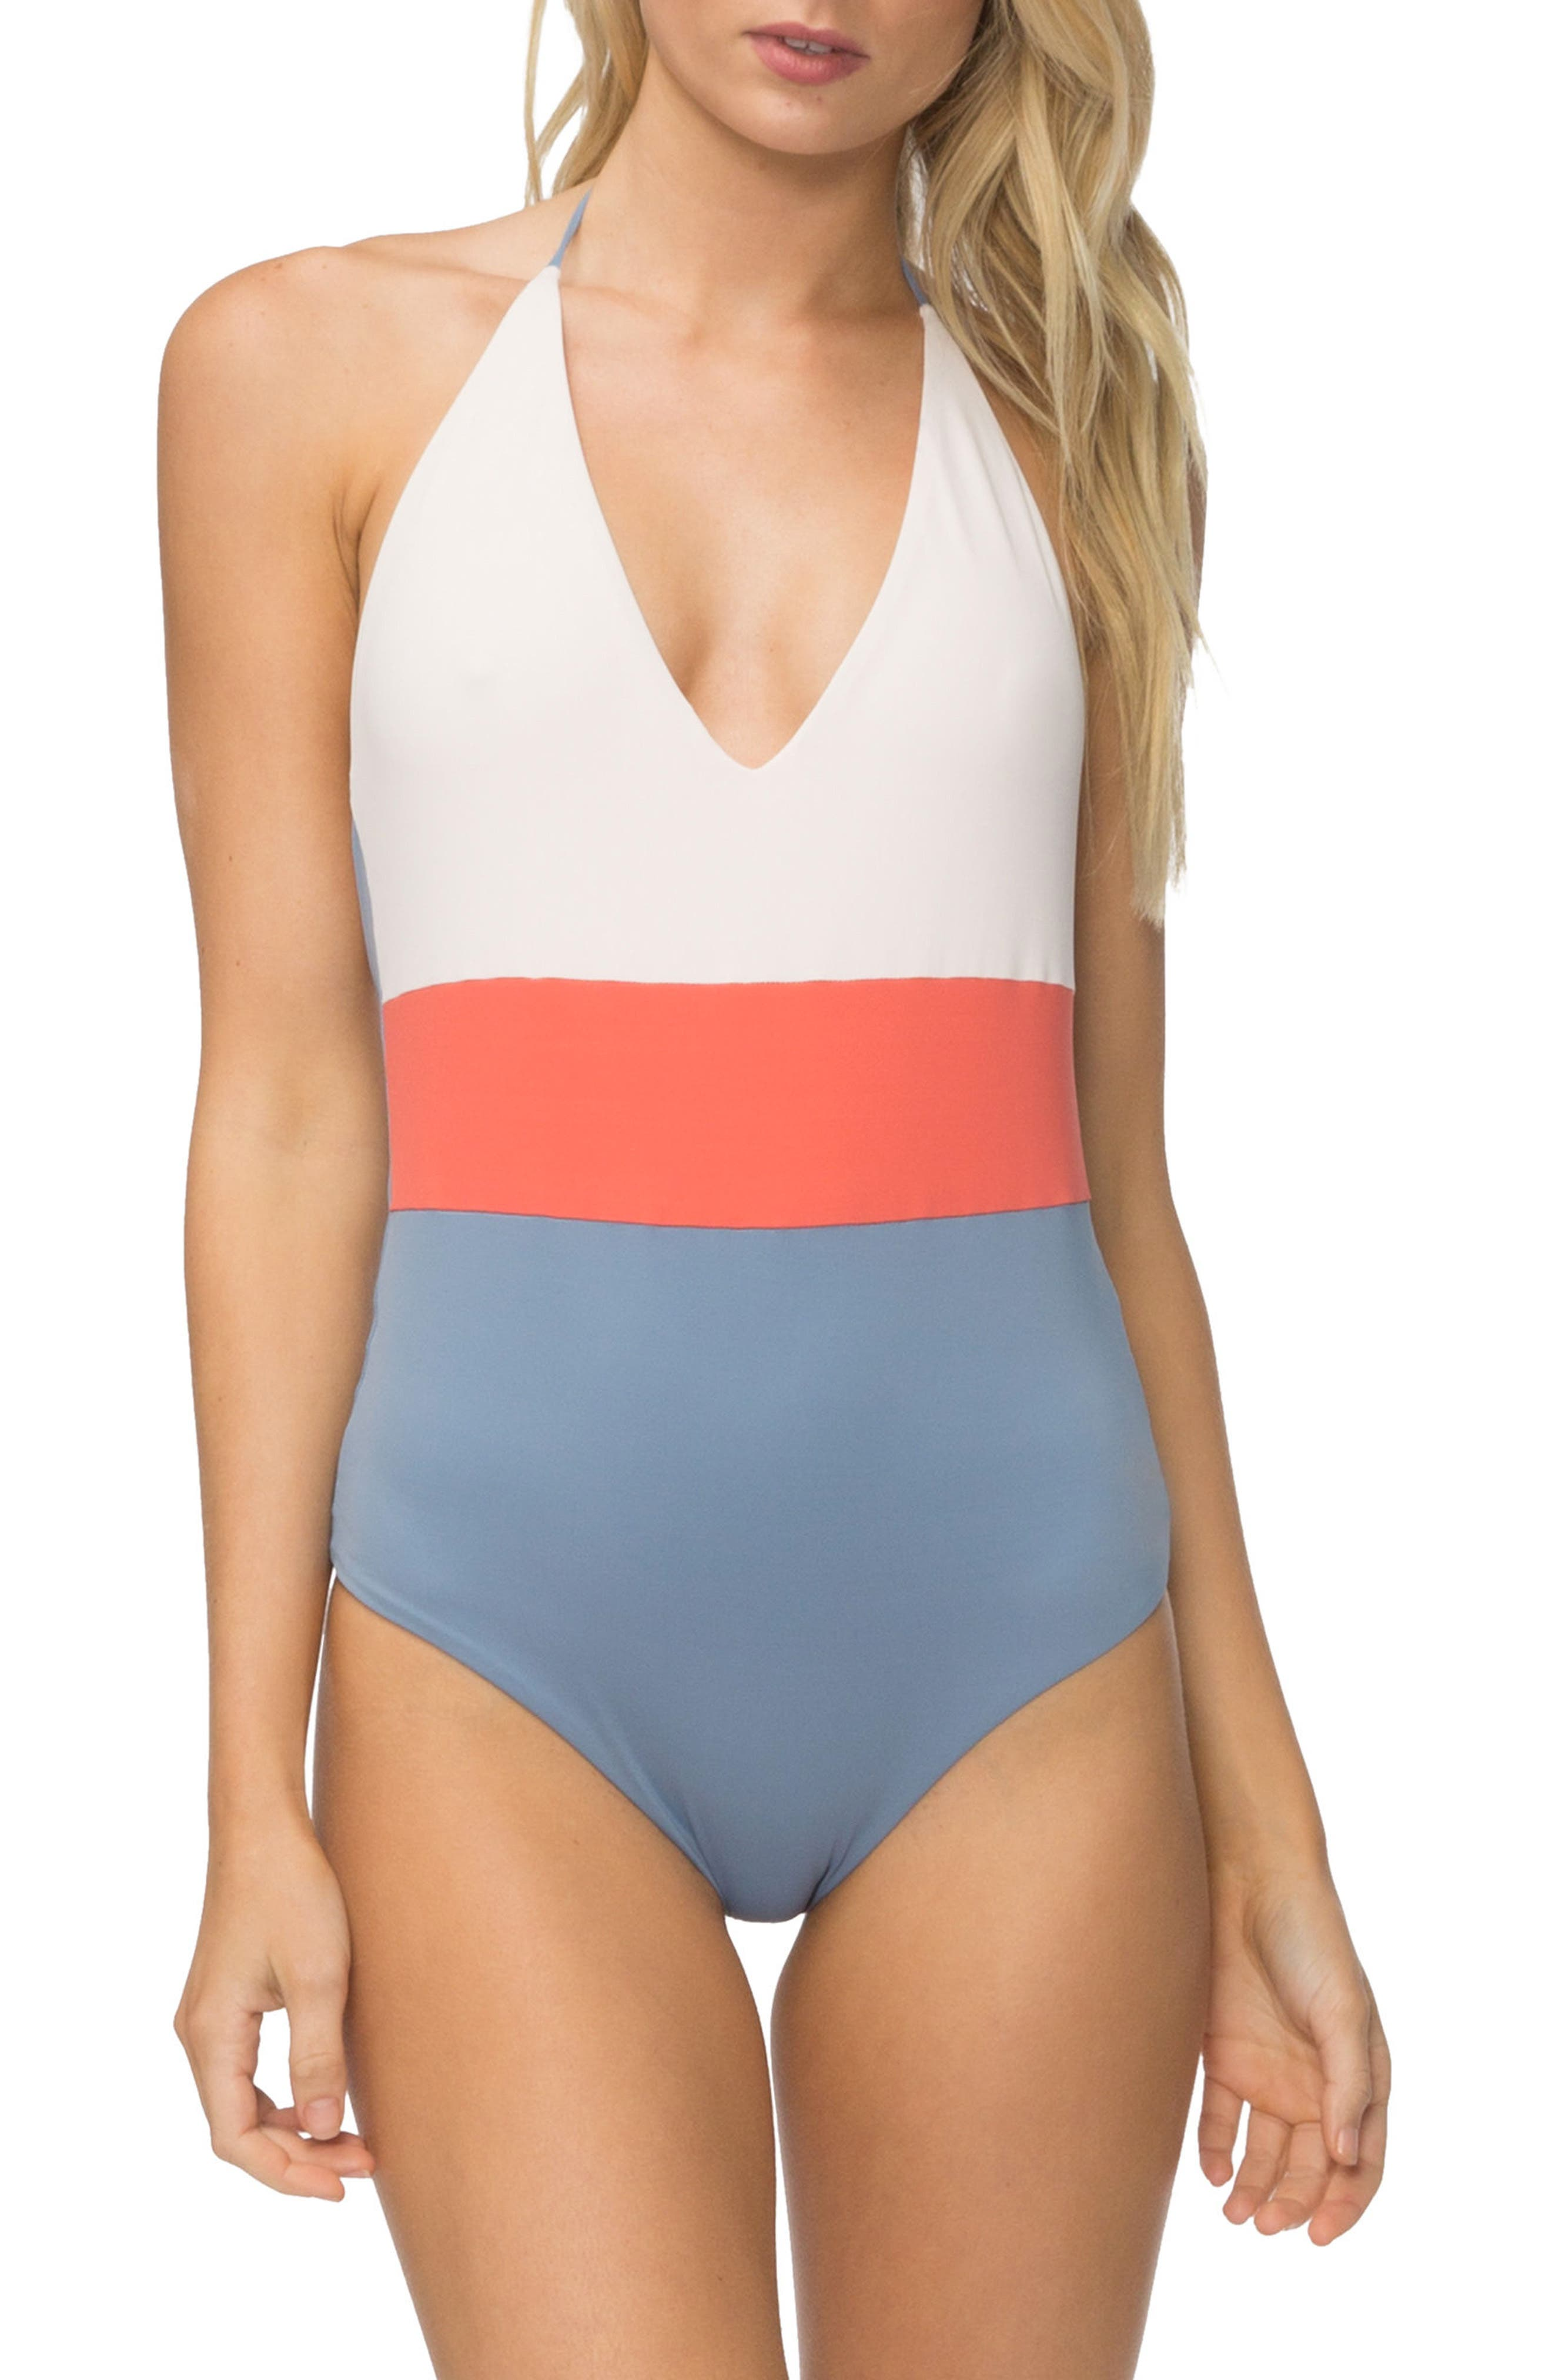 Chase One-Piece Swimsuit,                         Main,                         color, Pink Colorblock